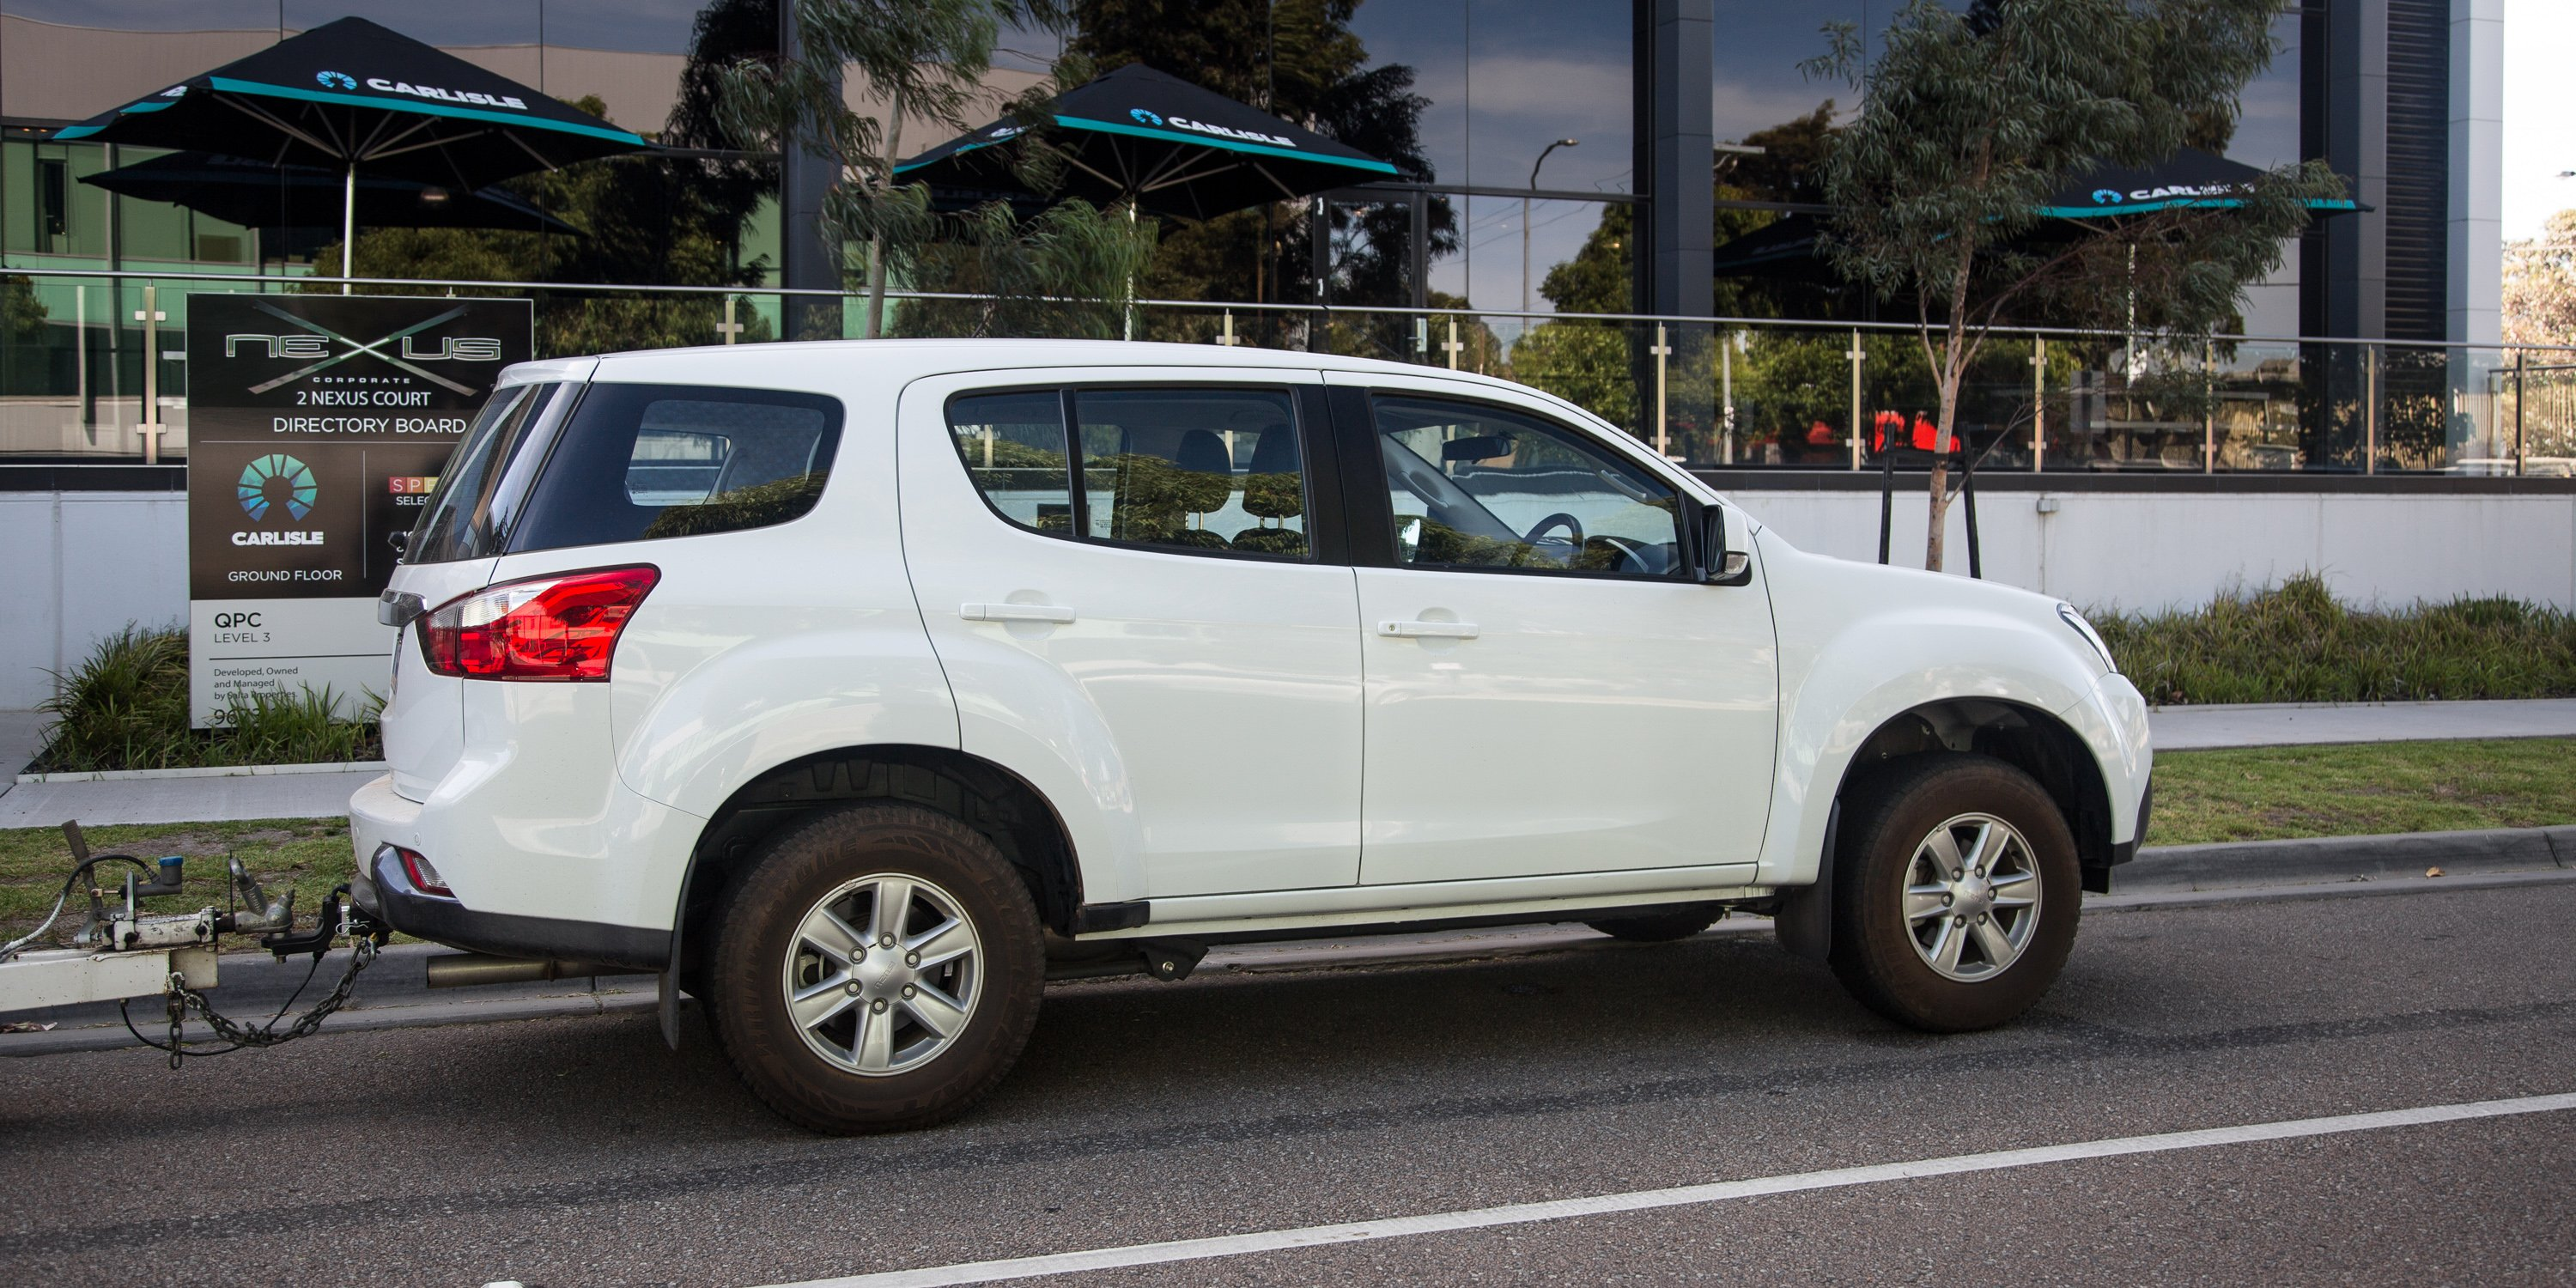 Awesome 2016 Isuzu MUX LSM 4x2 Review  CarAdvice